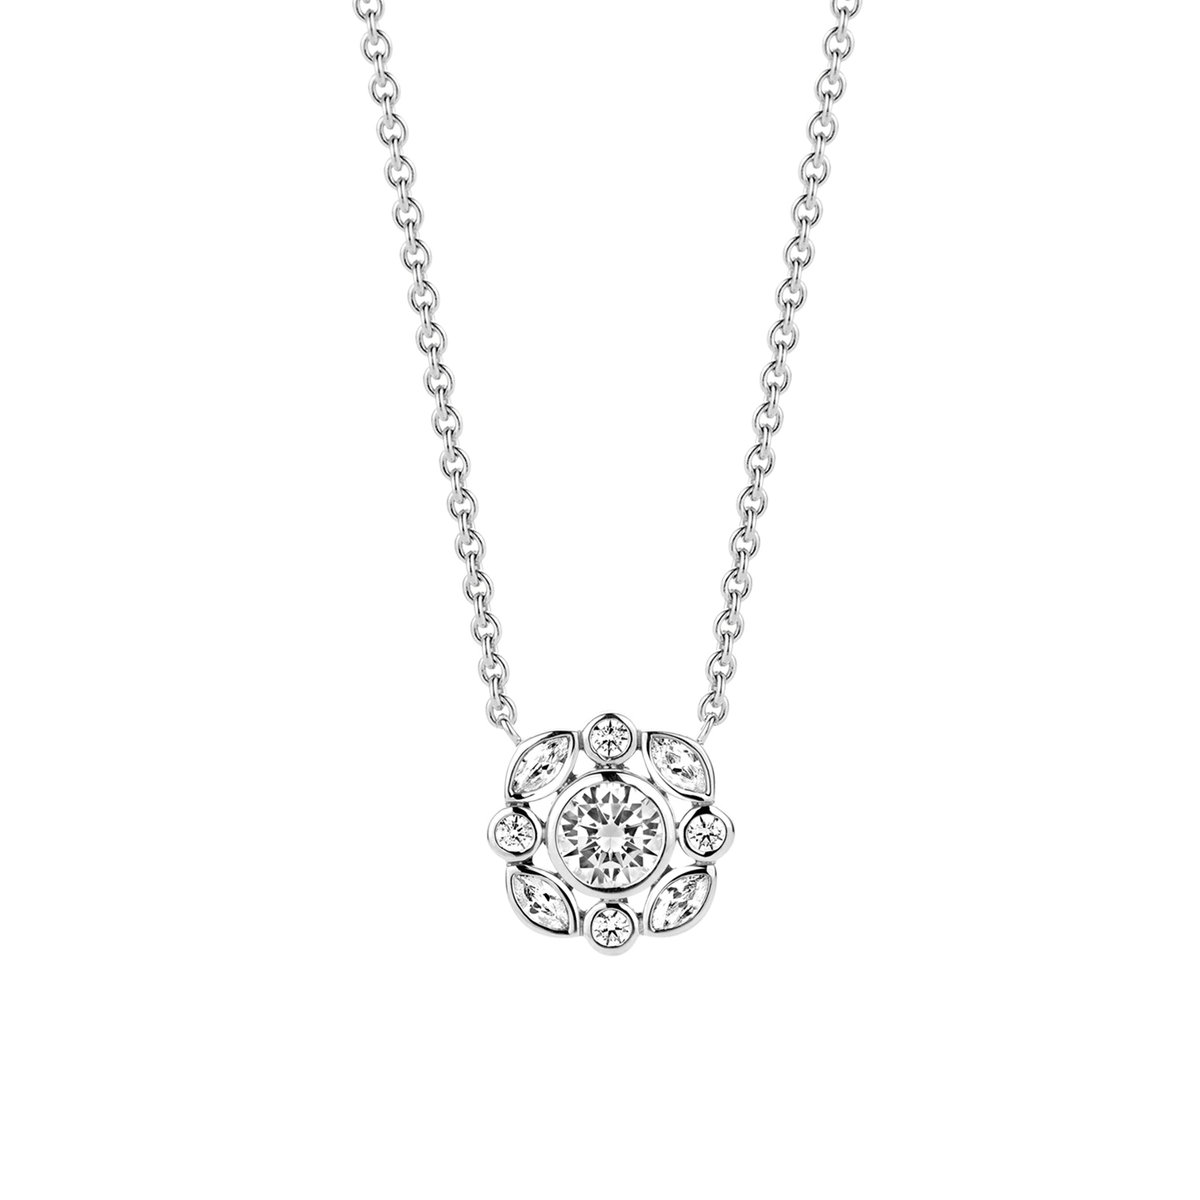 TI SENTO - Milano Necklace 3835ZI